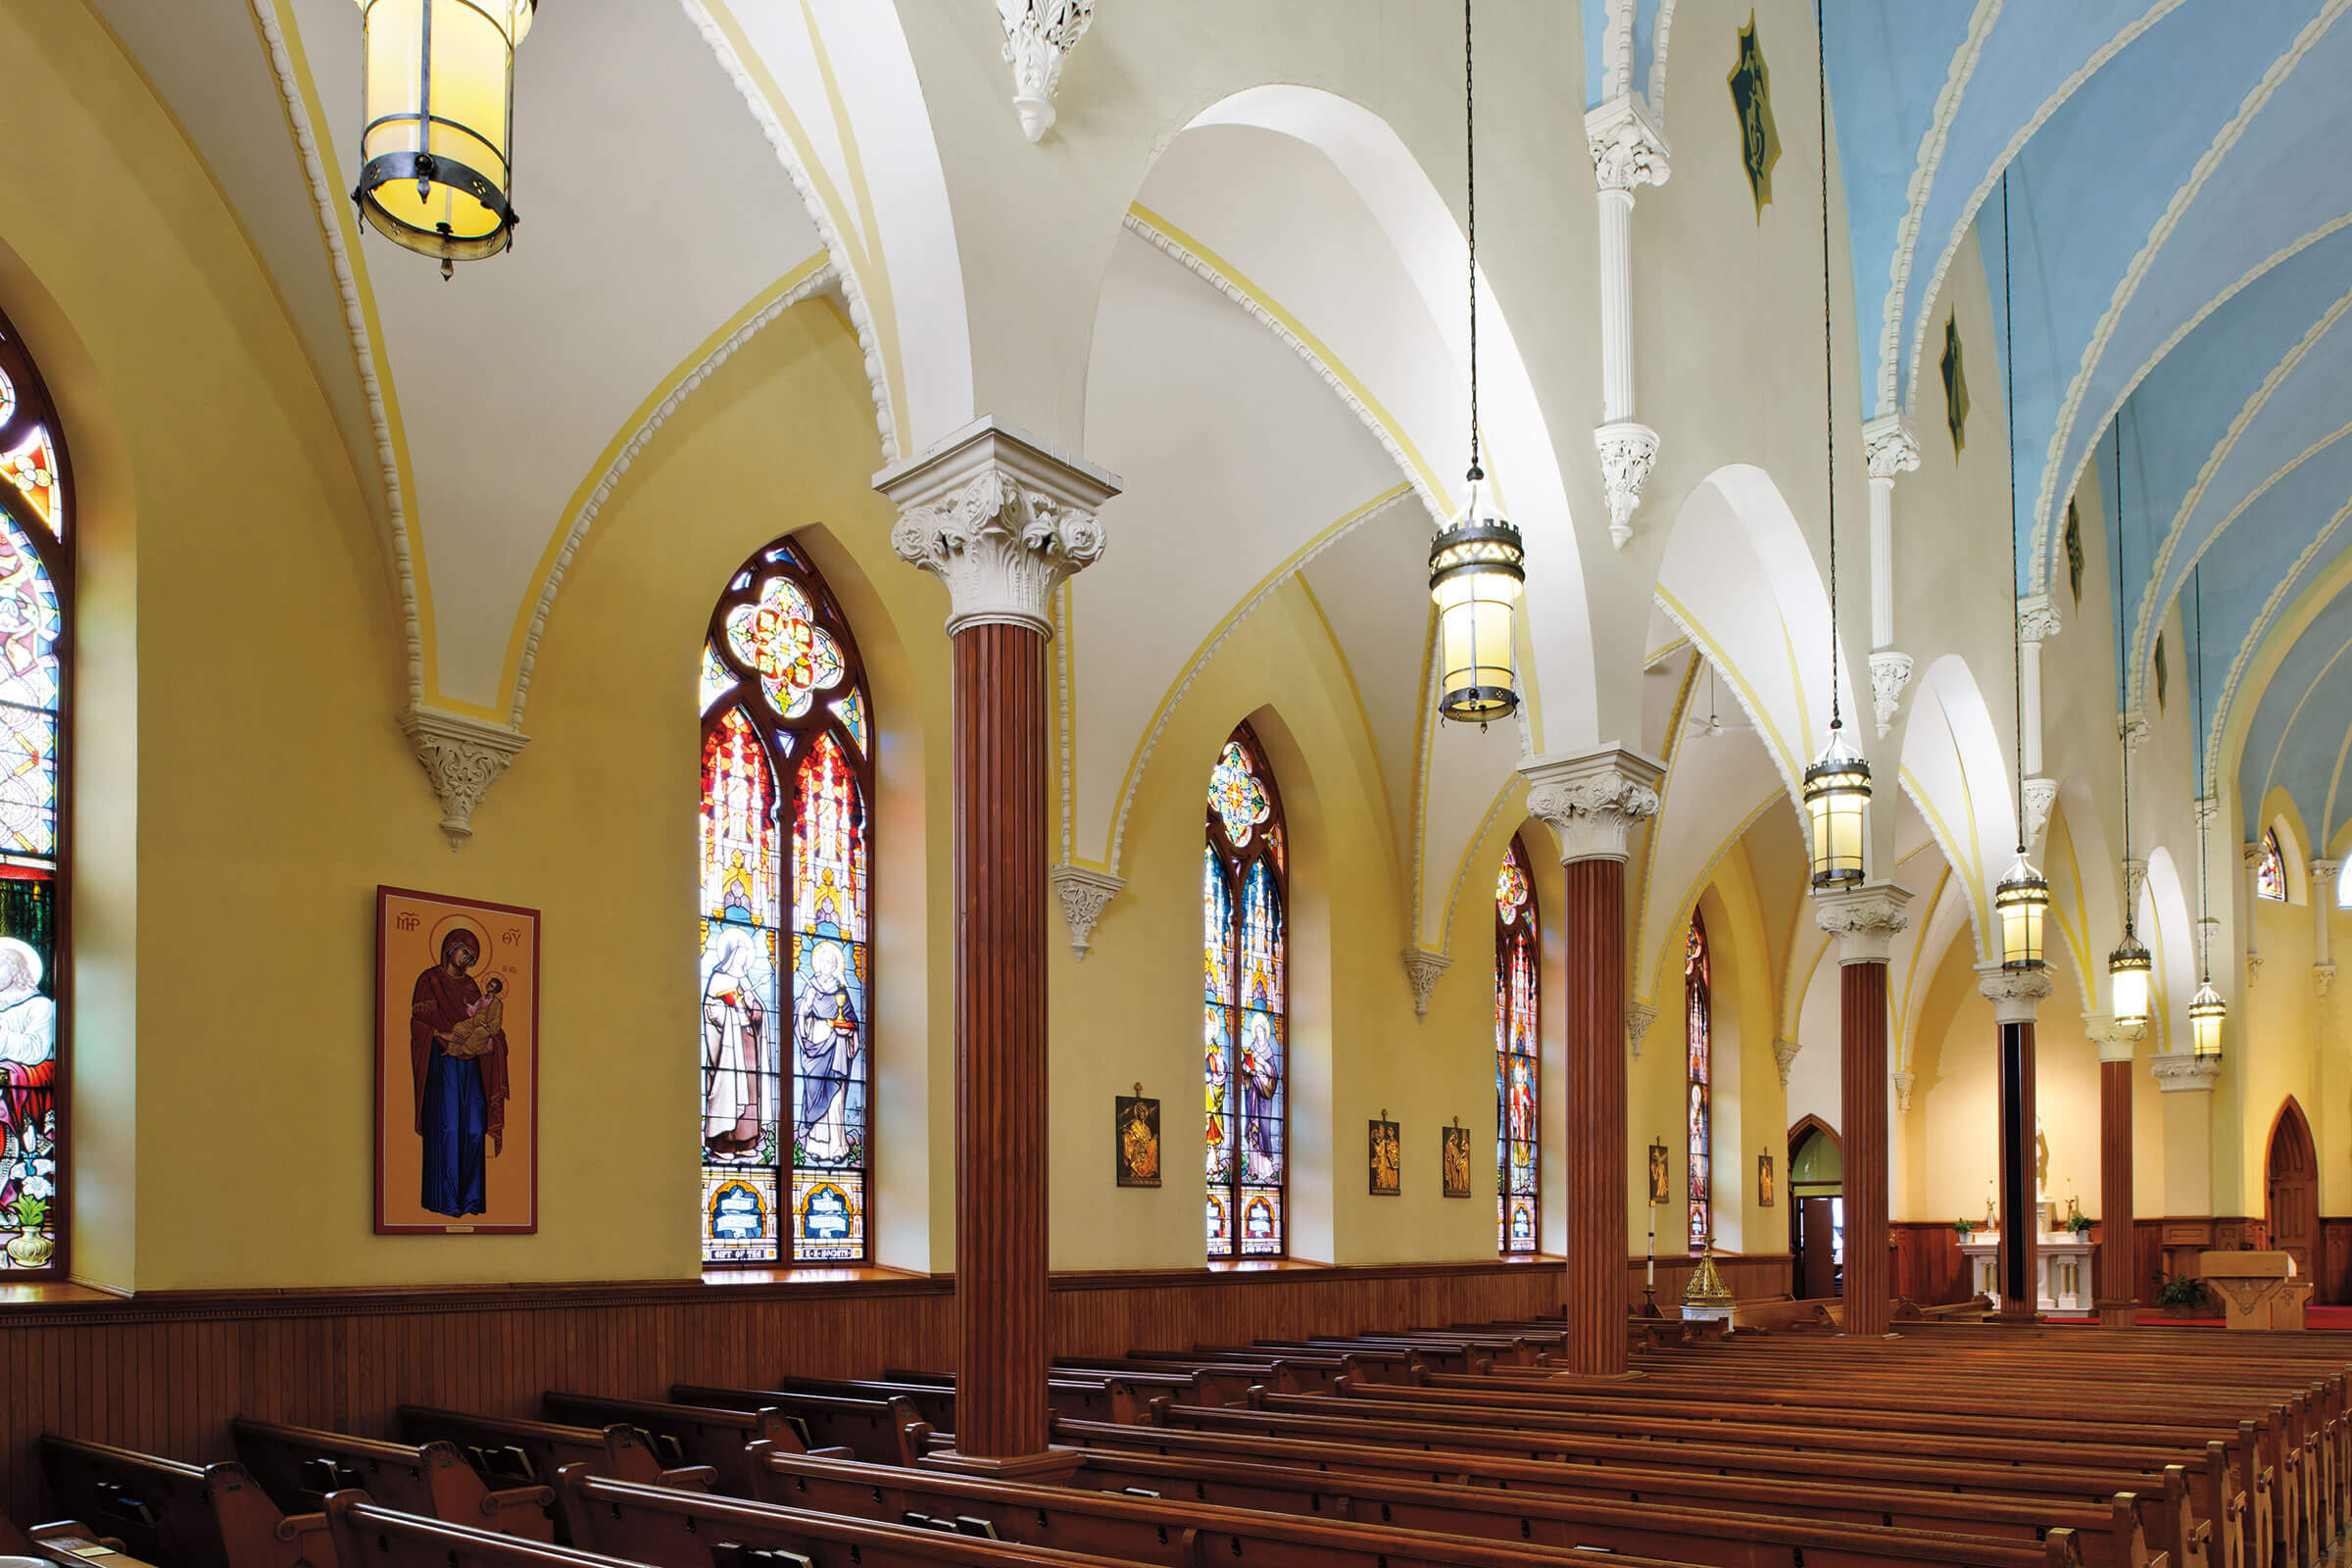 Interior View Of St. Mary's Catholic Church With Marvin Windows And Doors